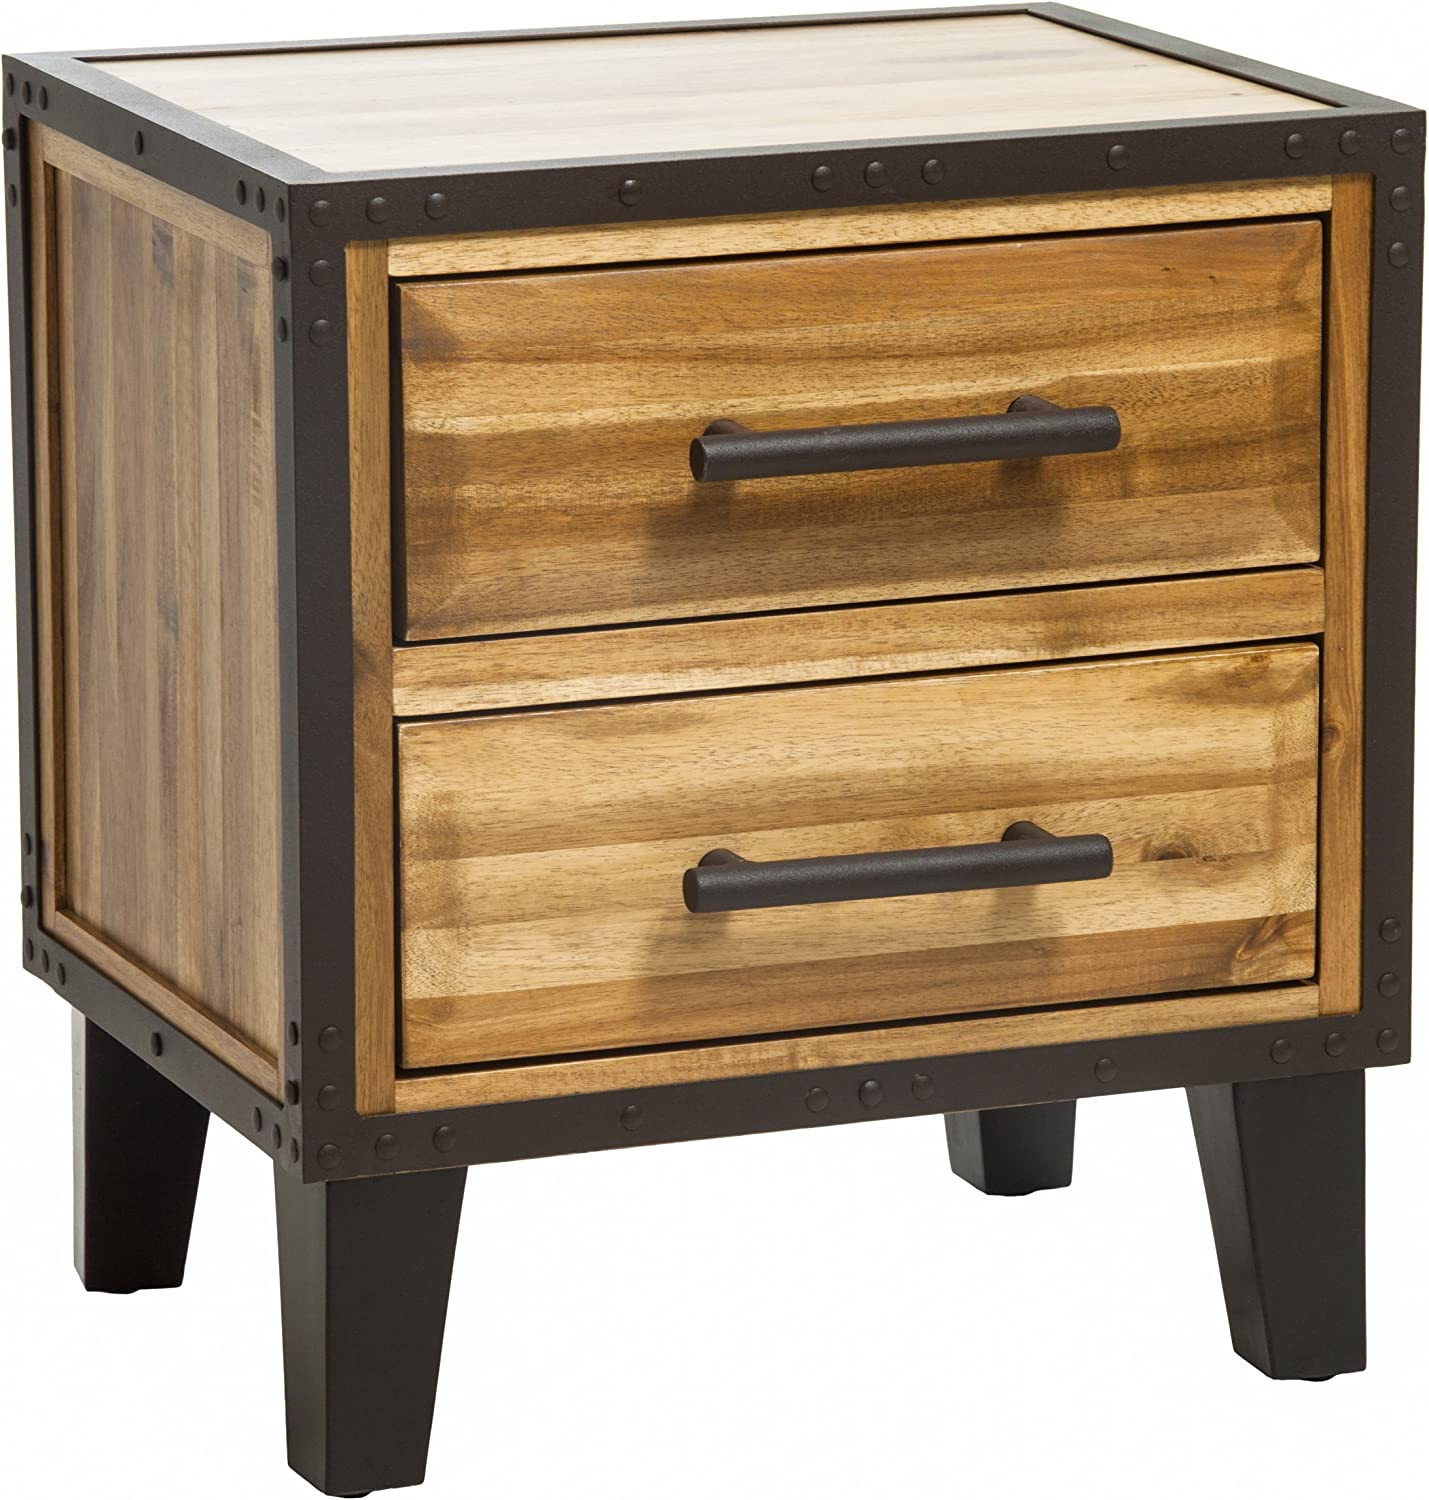 Christopher Knight Home 295304 Glendora Natural Stain Solid Wood Two Drawer Nightstand, Brown